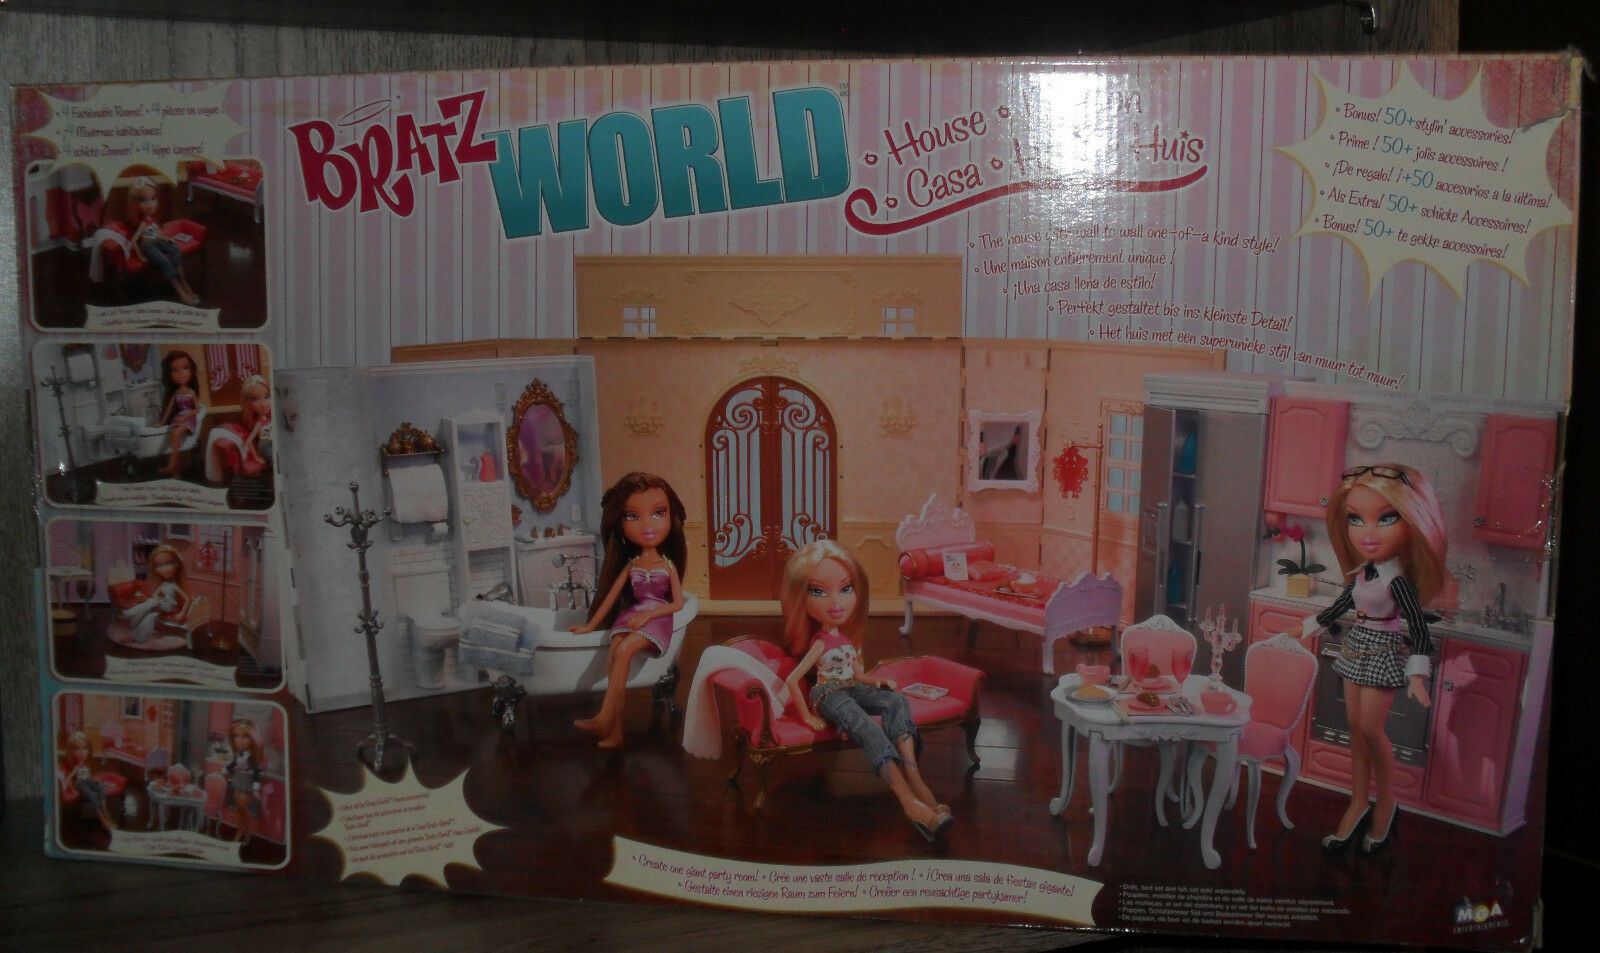 Bratz world maison house DE muñeca BRATZ doll NRFB